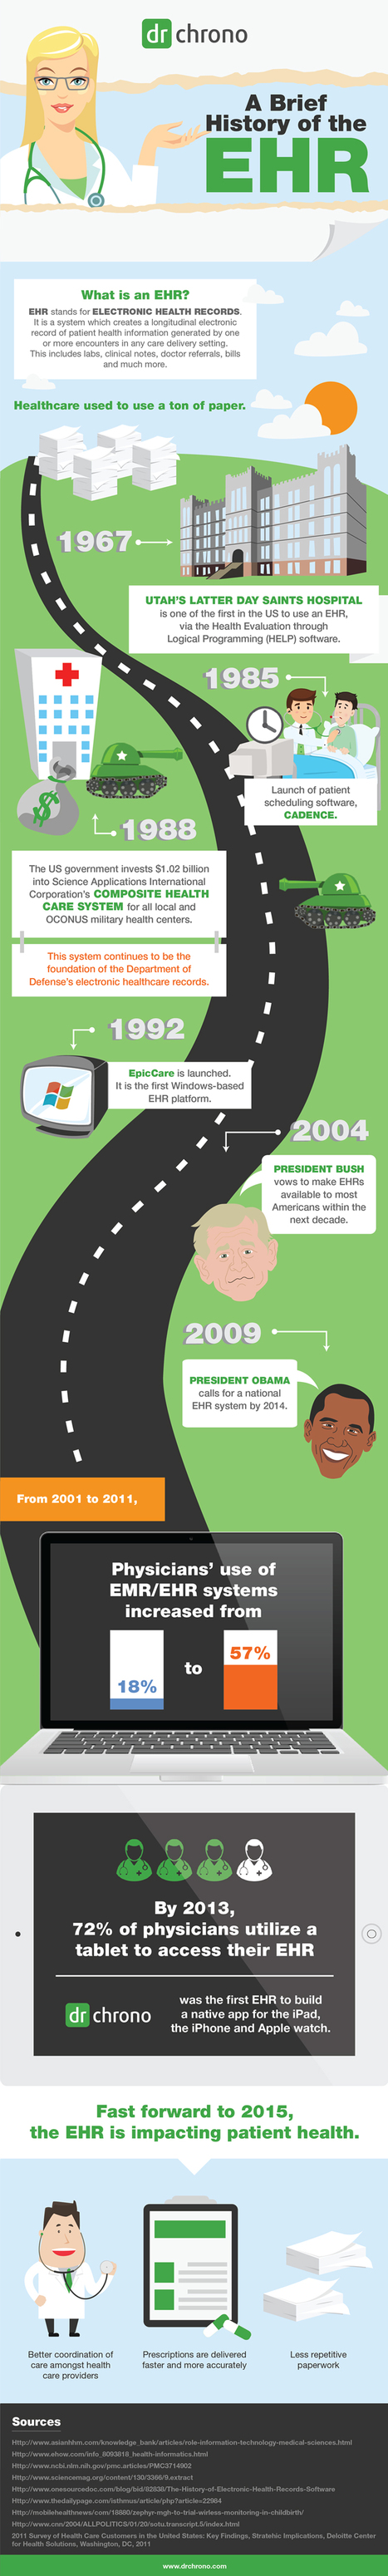 Infographic: An Illustrated History of EHR | EHR and Health IT Consulting | Scoop.it